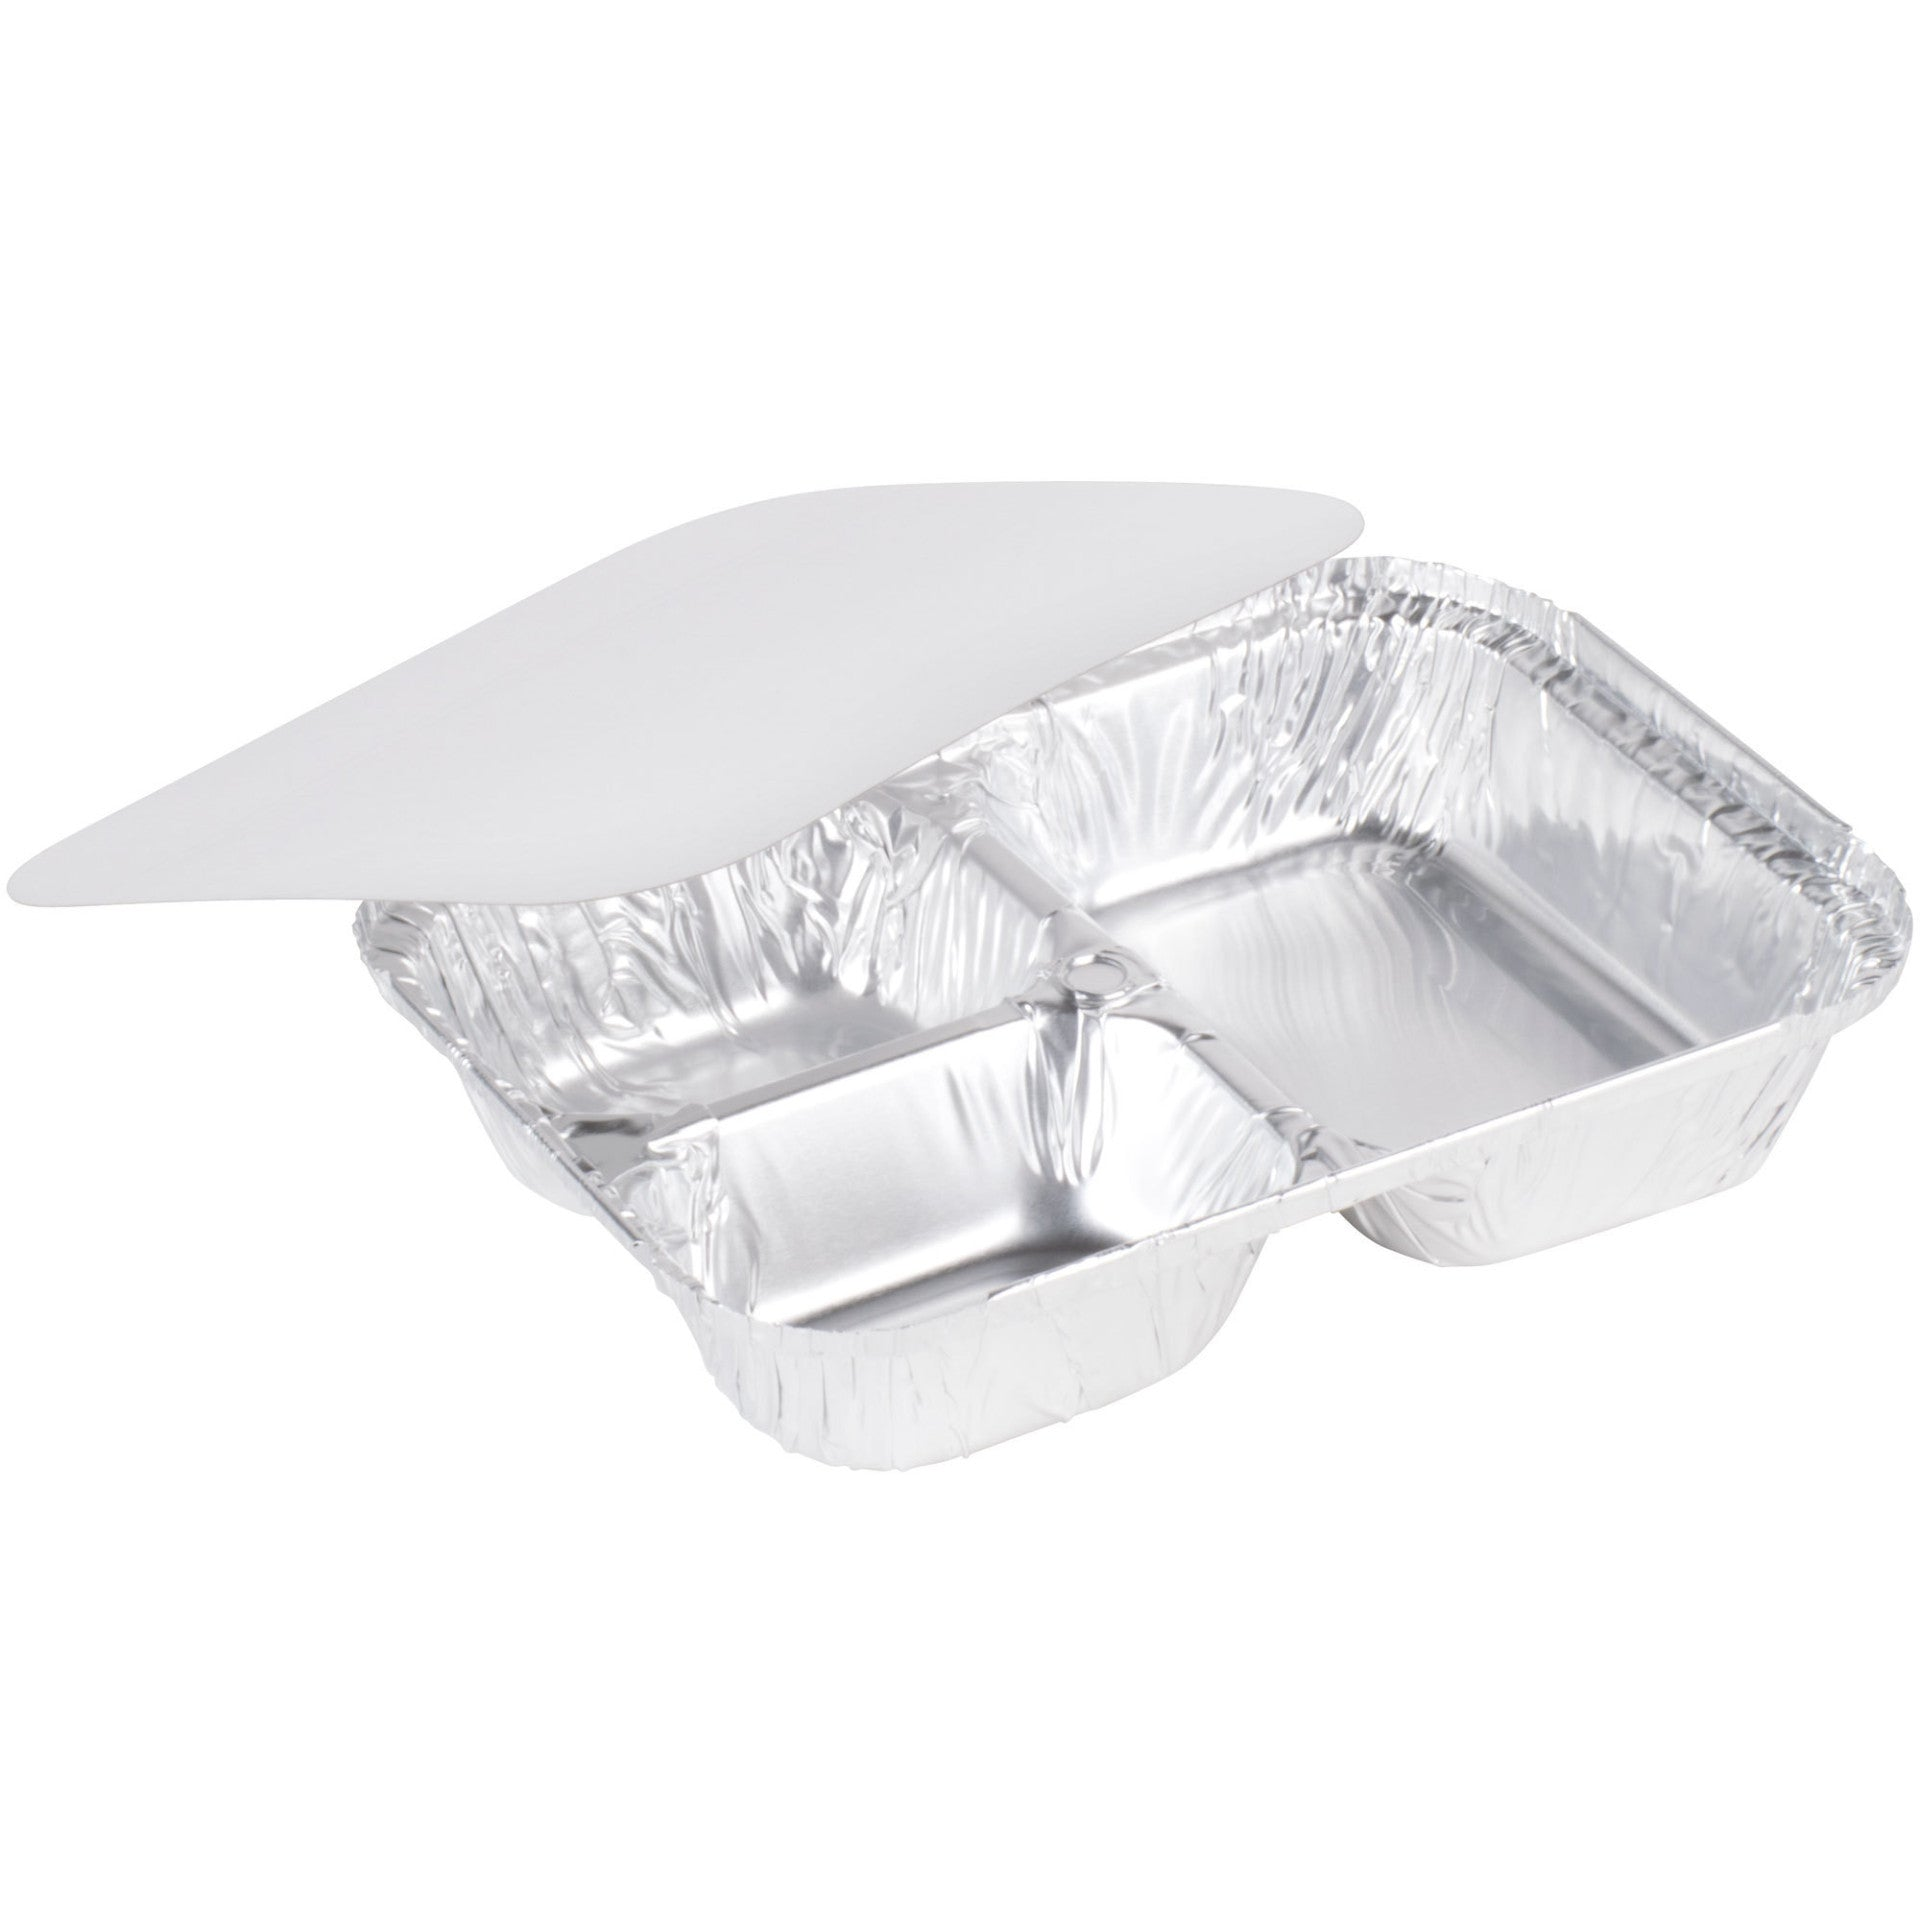 ... TV Dinner Tray Set of 10 Silver Foil Disposable Plates With Lids3 Compartment  sc 1 st  Polly and Ester & TV Dinner Tray Set of 10 Silver Foil Disposable Plates With Lids3 ...